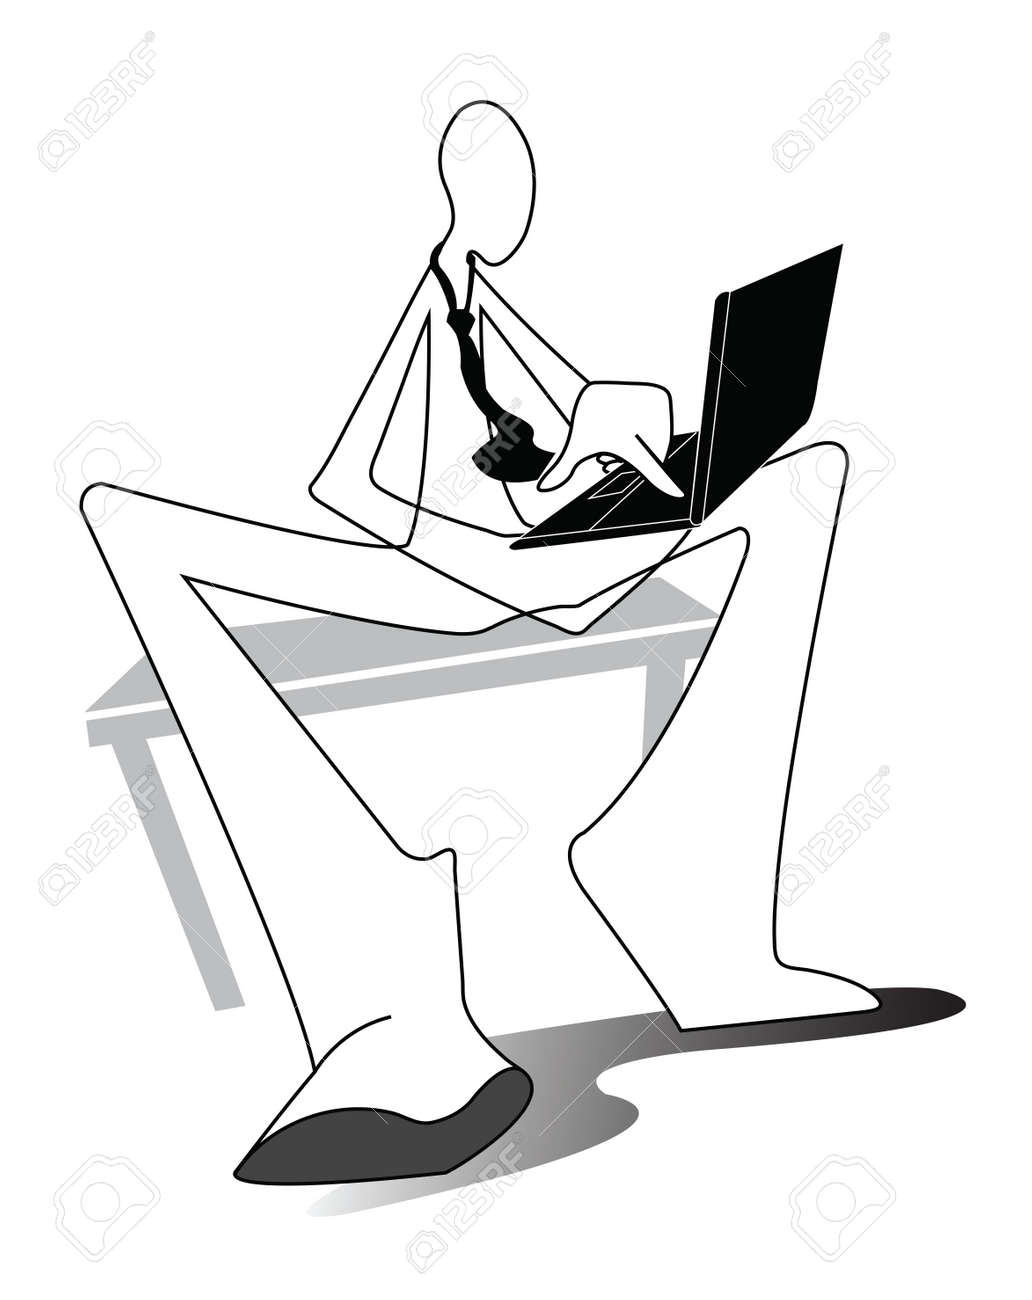 Man sitting in chair drawing - Business Man Working Connection Social Network On Computer Lab Top Sit On The Chair Chesterfield Shadow